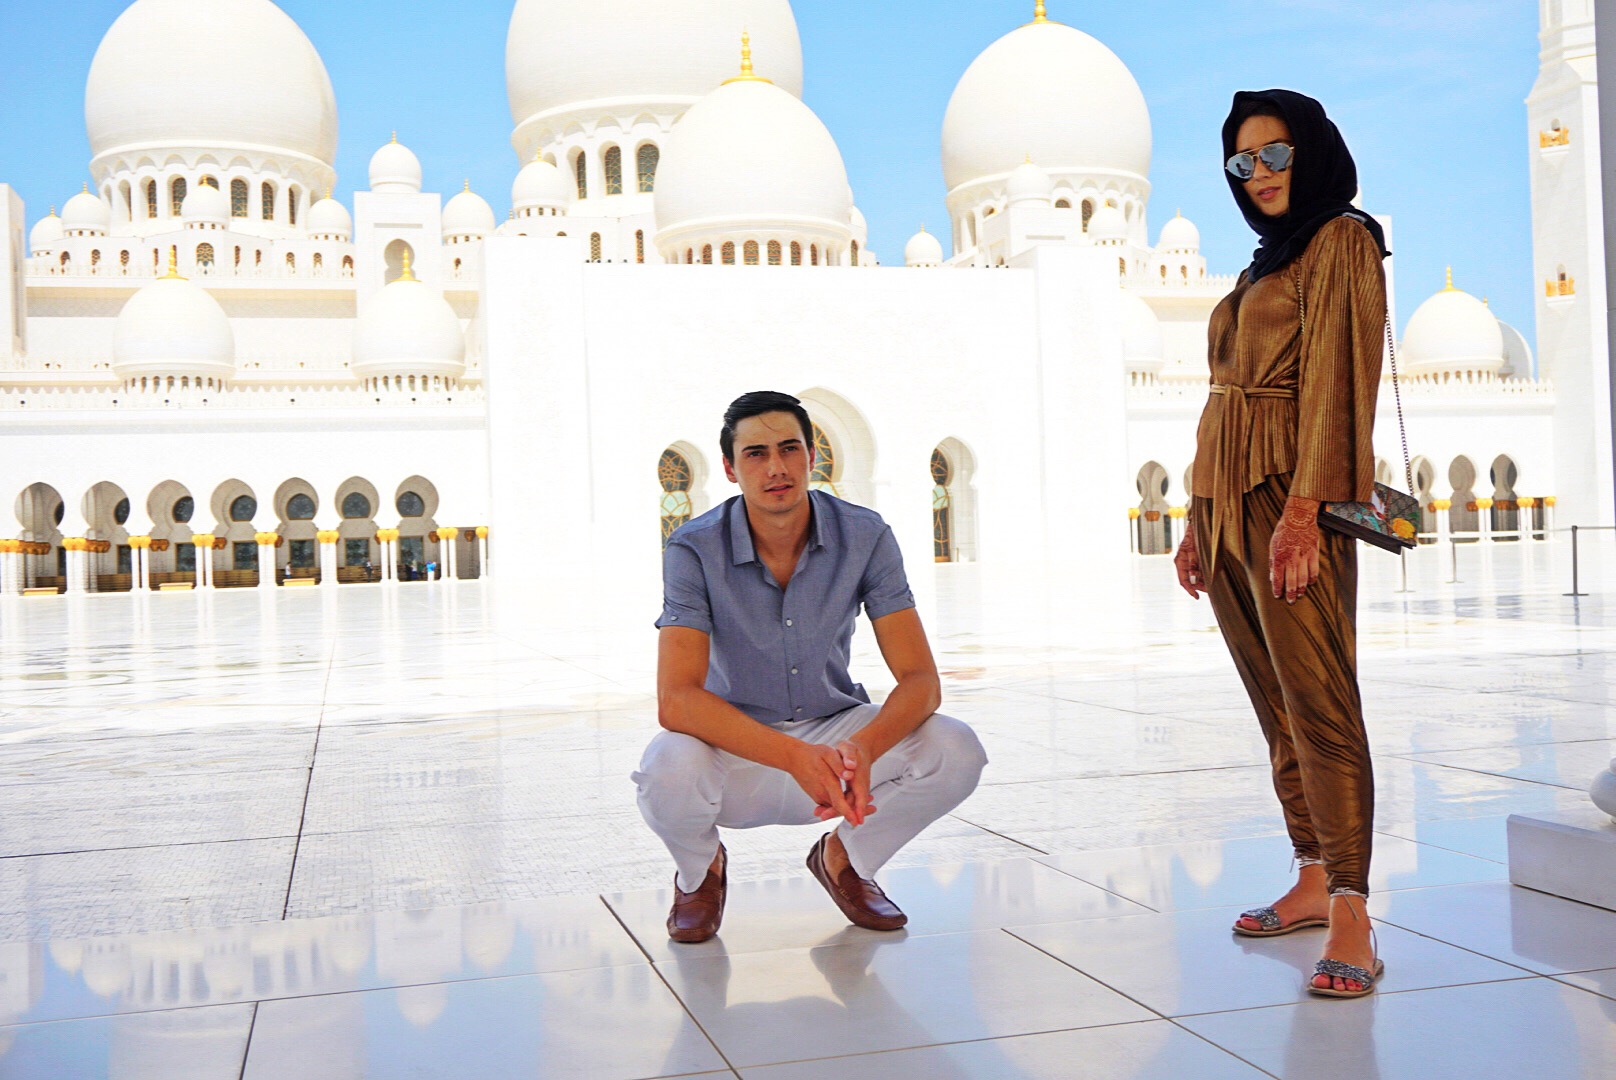 magazine-photo-shoot-abu-dhabi-mosque